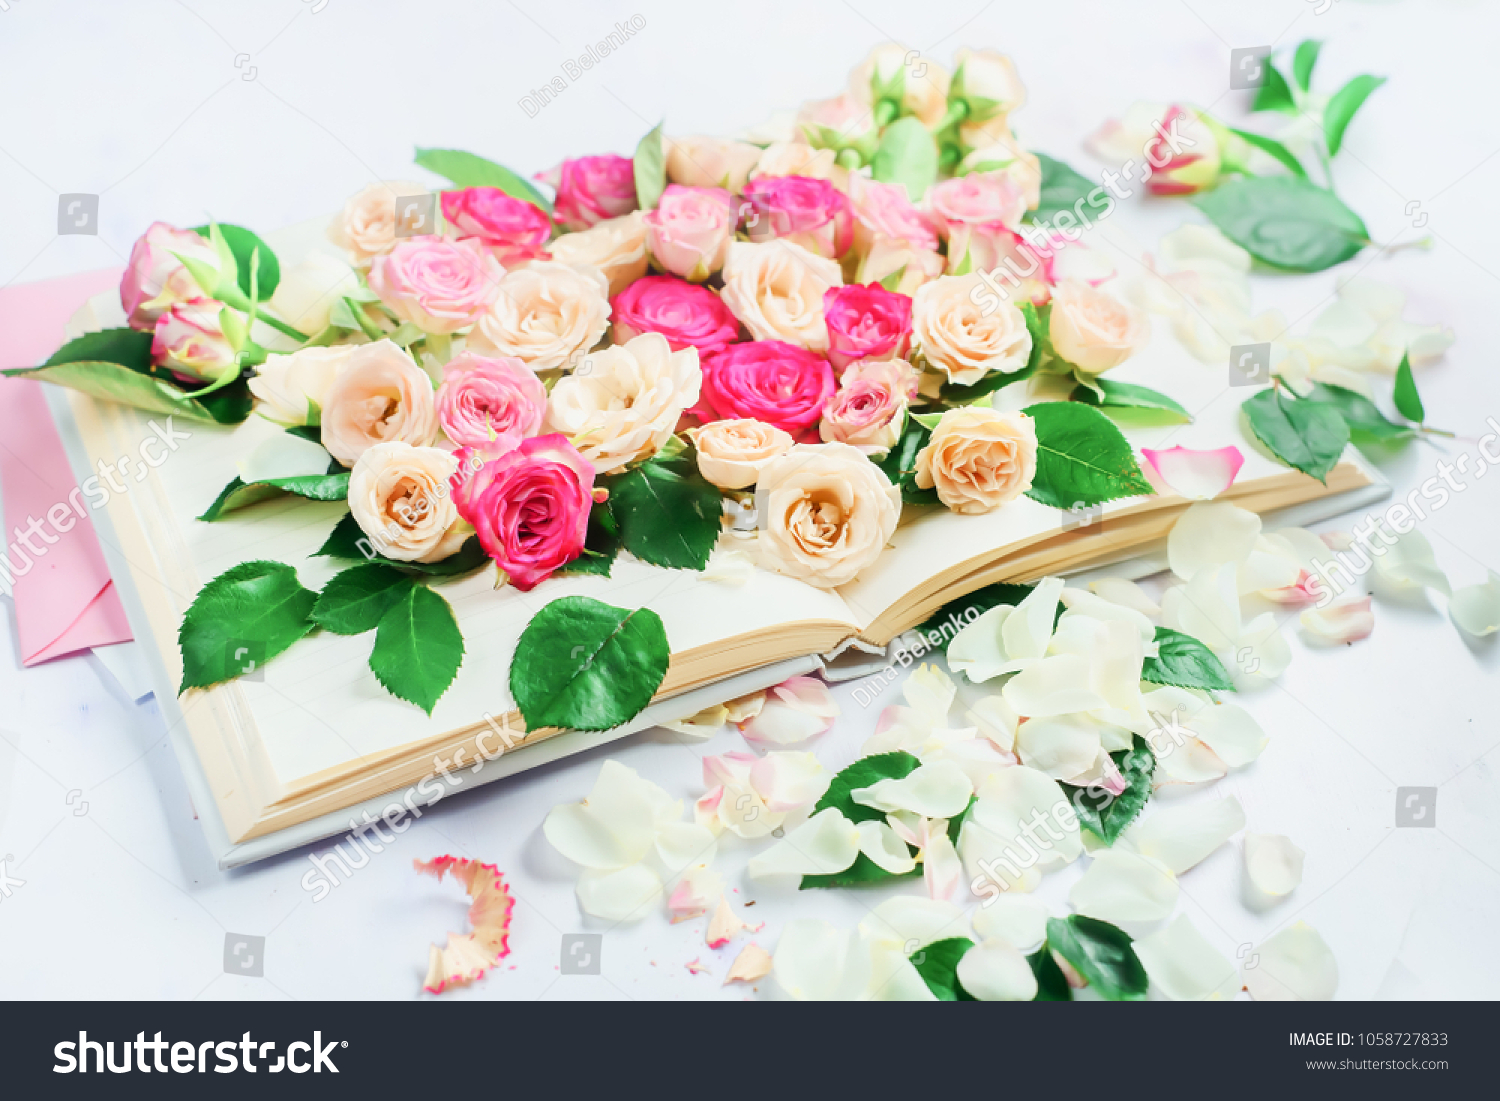 Open Book Flowers Rose Petals On Stock Photo (Edit Now) 1058727833